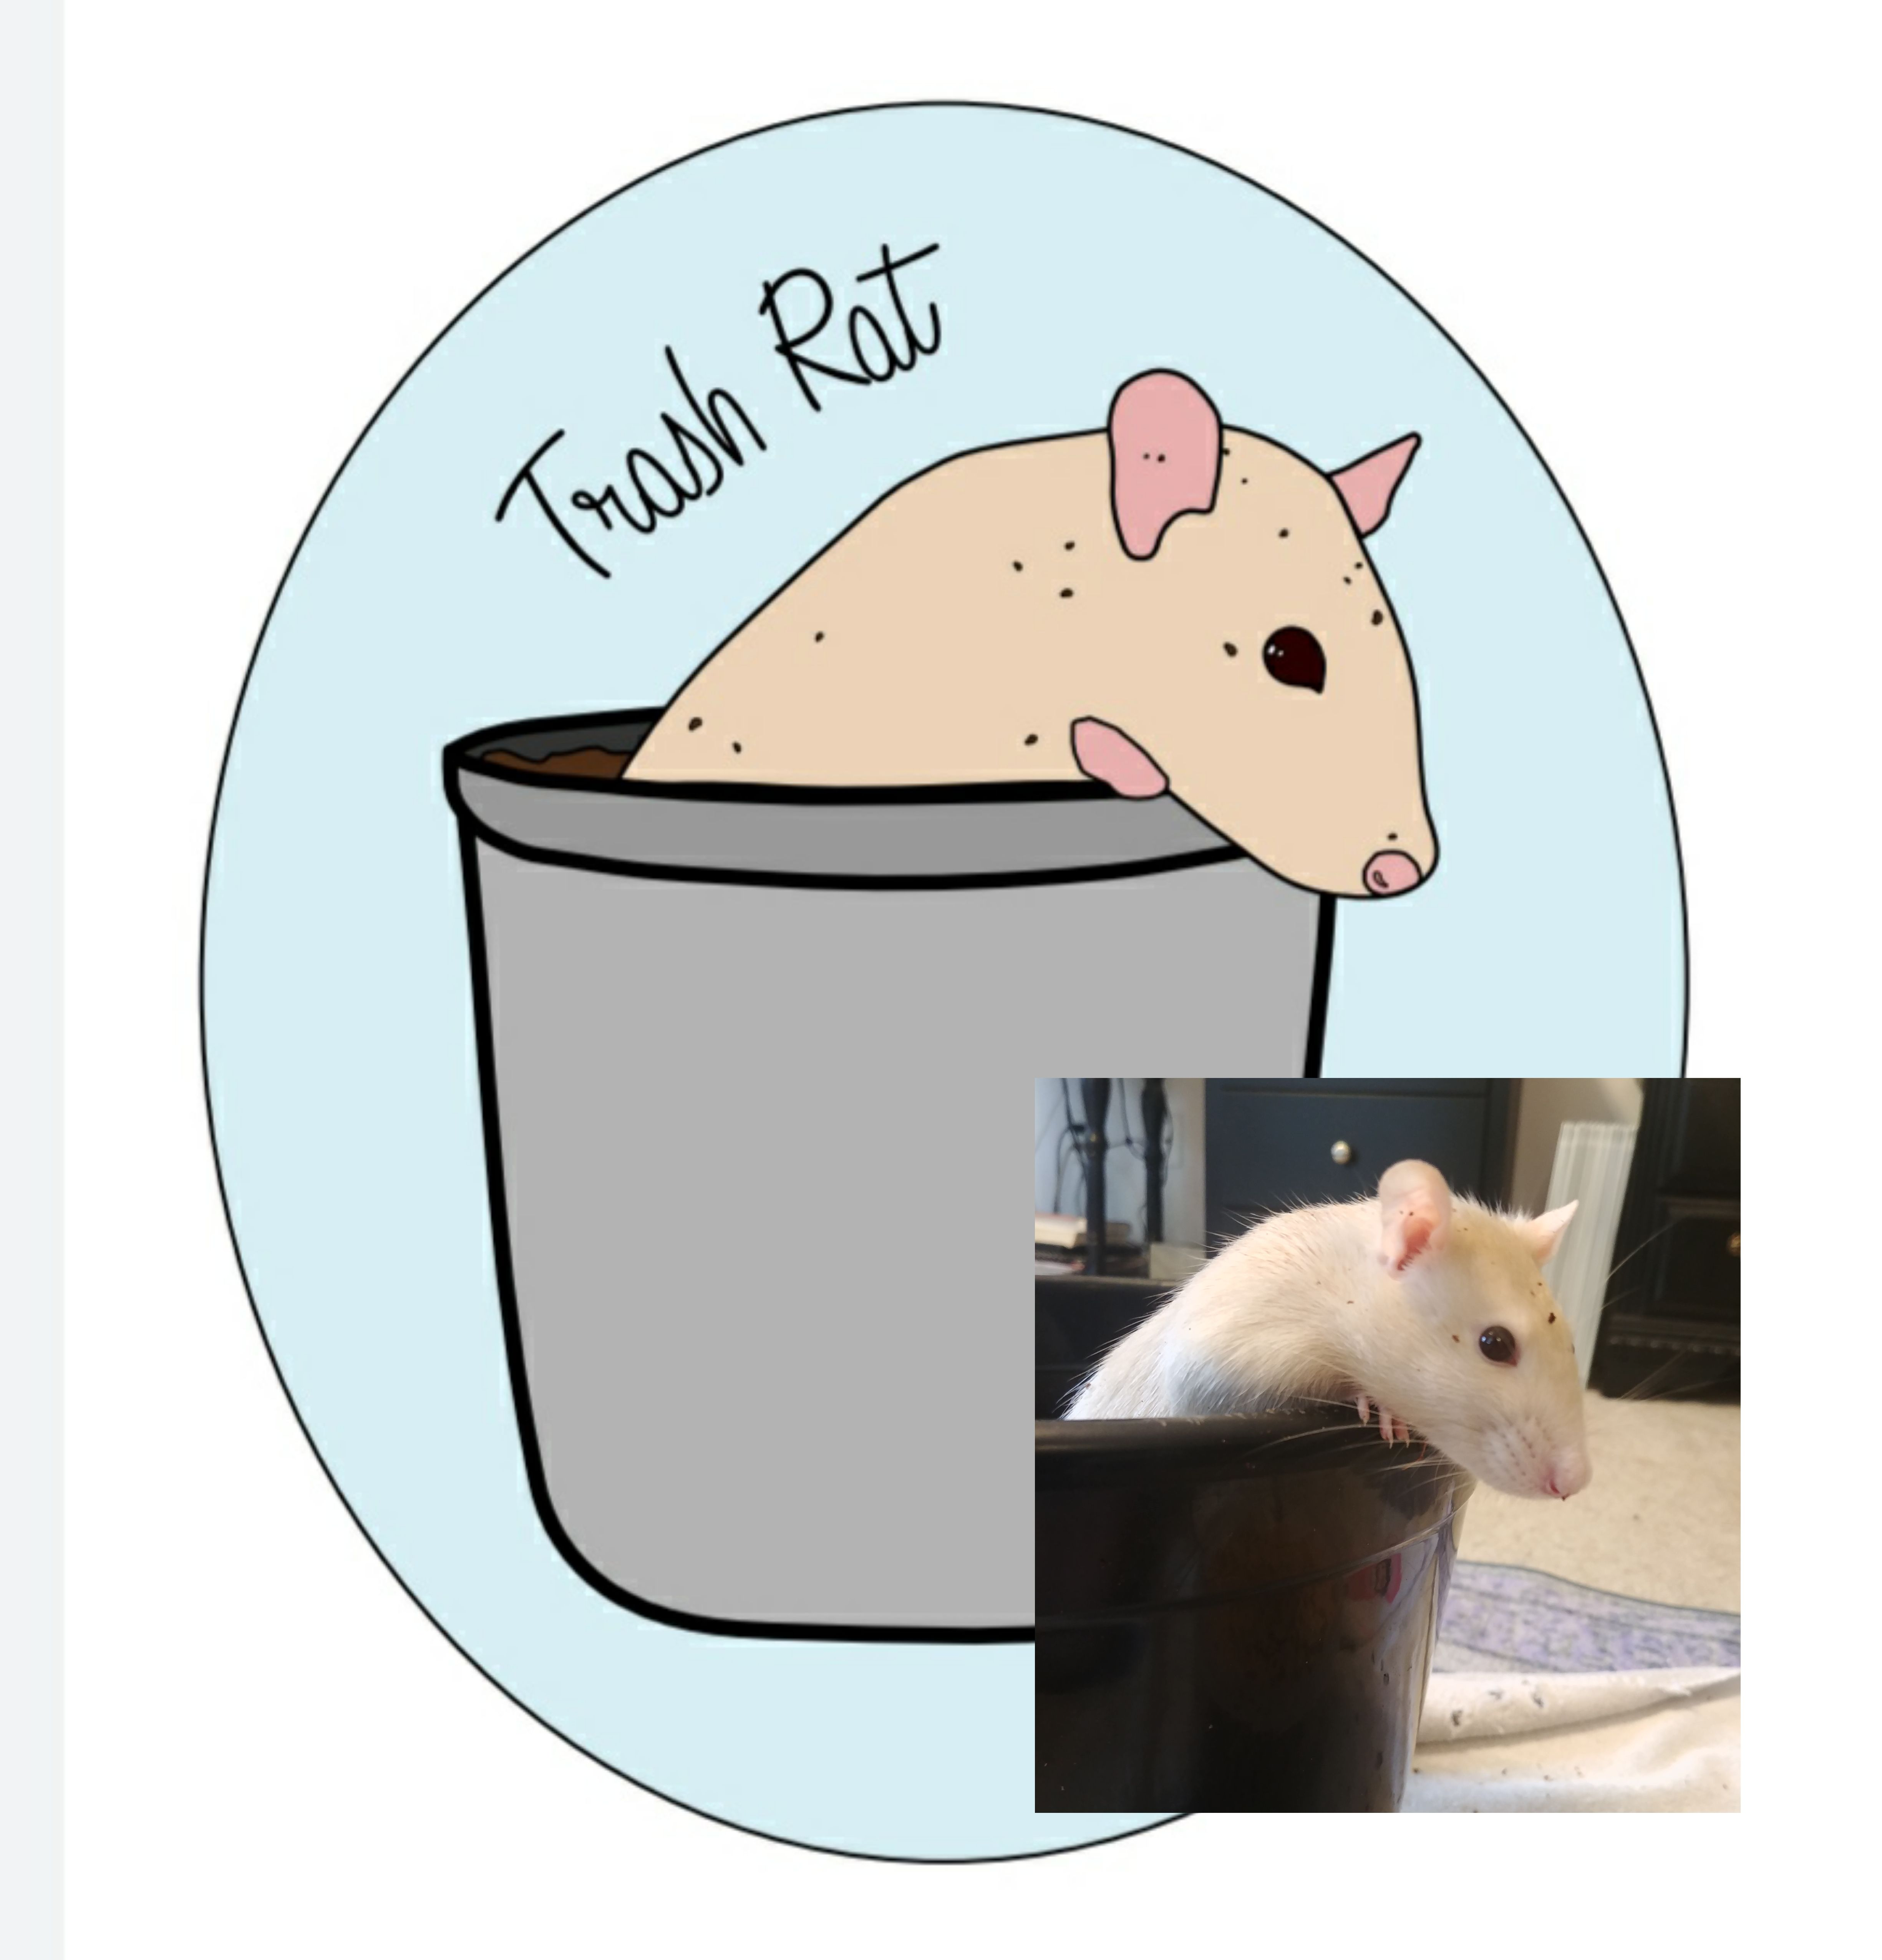 In Memory Of My Beloved Tat Rat Who Simply Adored Jumping Into Trash Cans Rat Rats Rodent Pet Rats Pets Adorable